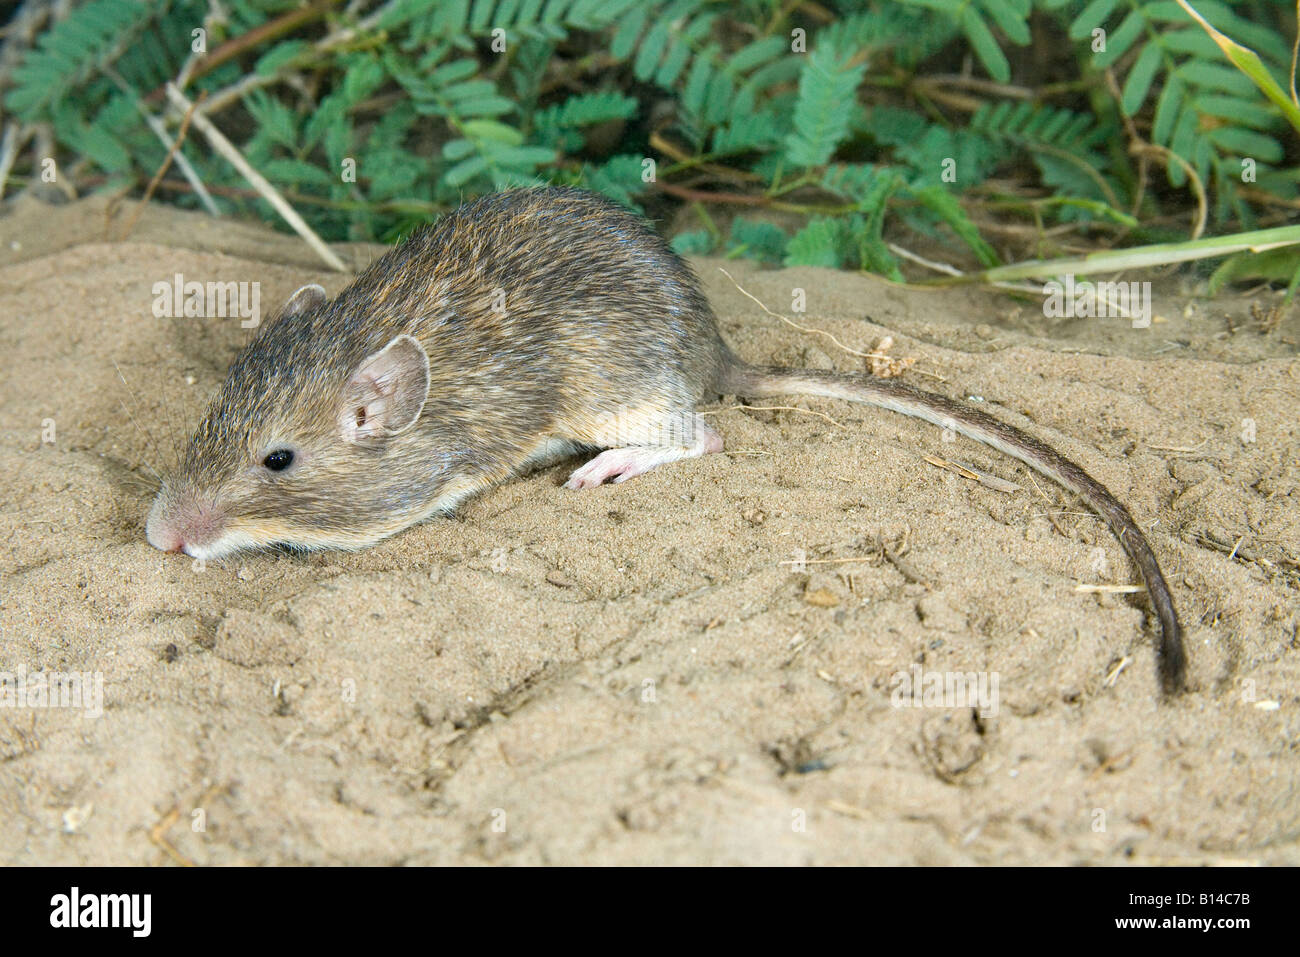 Mexican Spiny Pocket Mouse Liomys irroratus Stock Photo